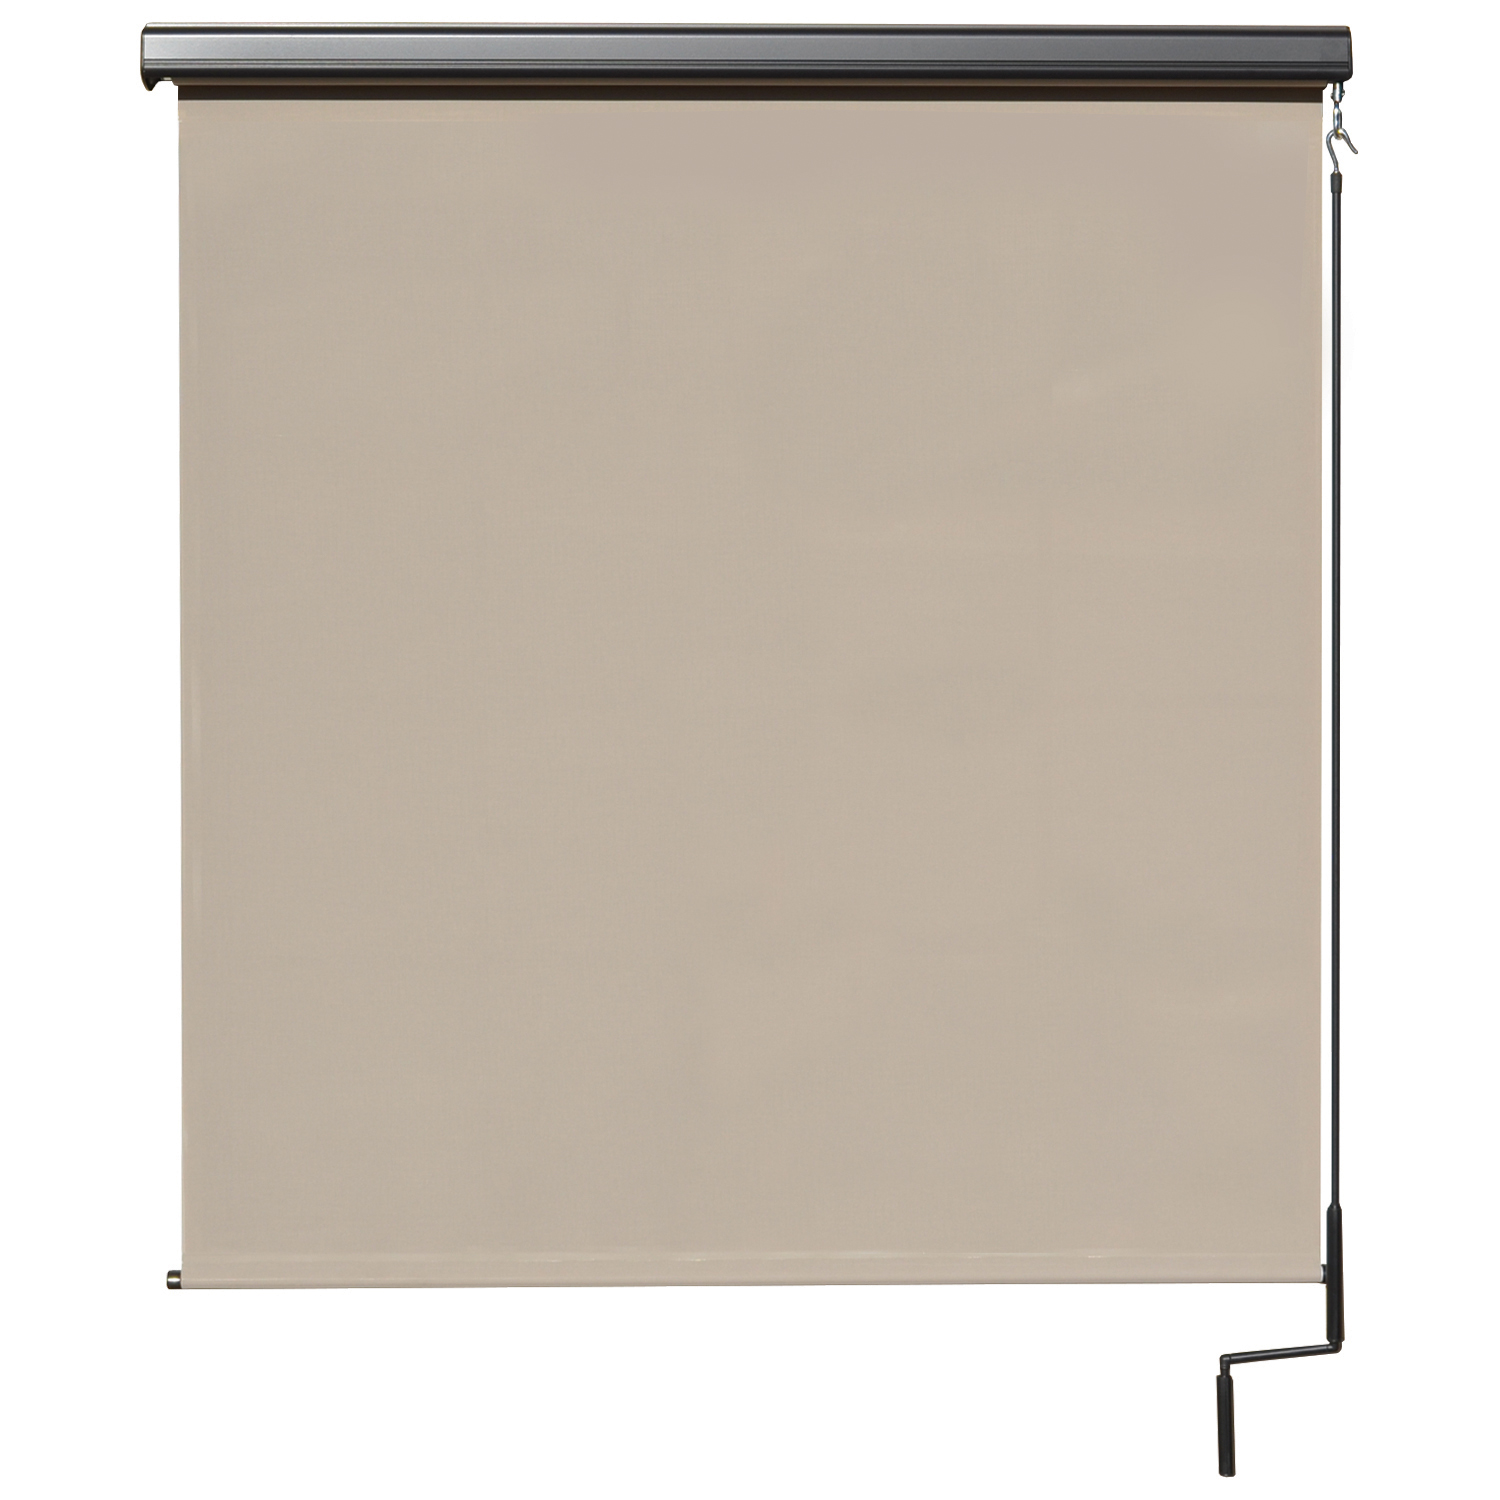 Premier Cordless Outdoor Sun Shade with Protective Valance, 8' W x 8' L, Maple